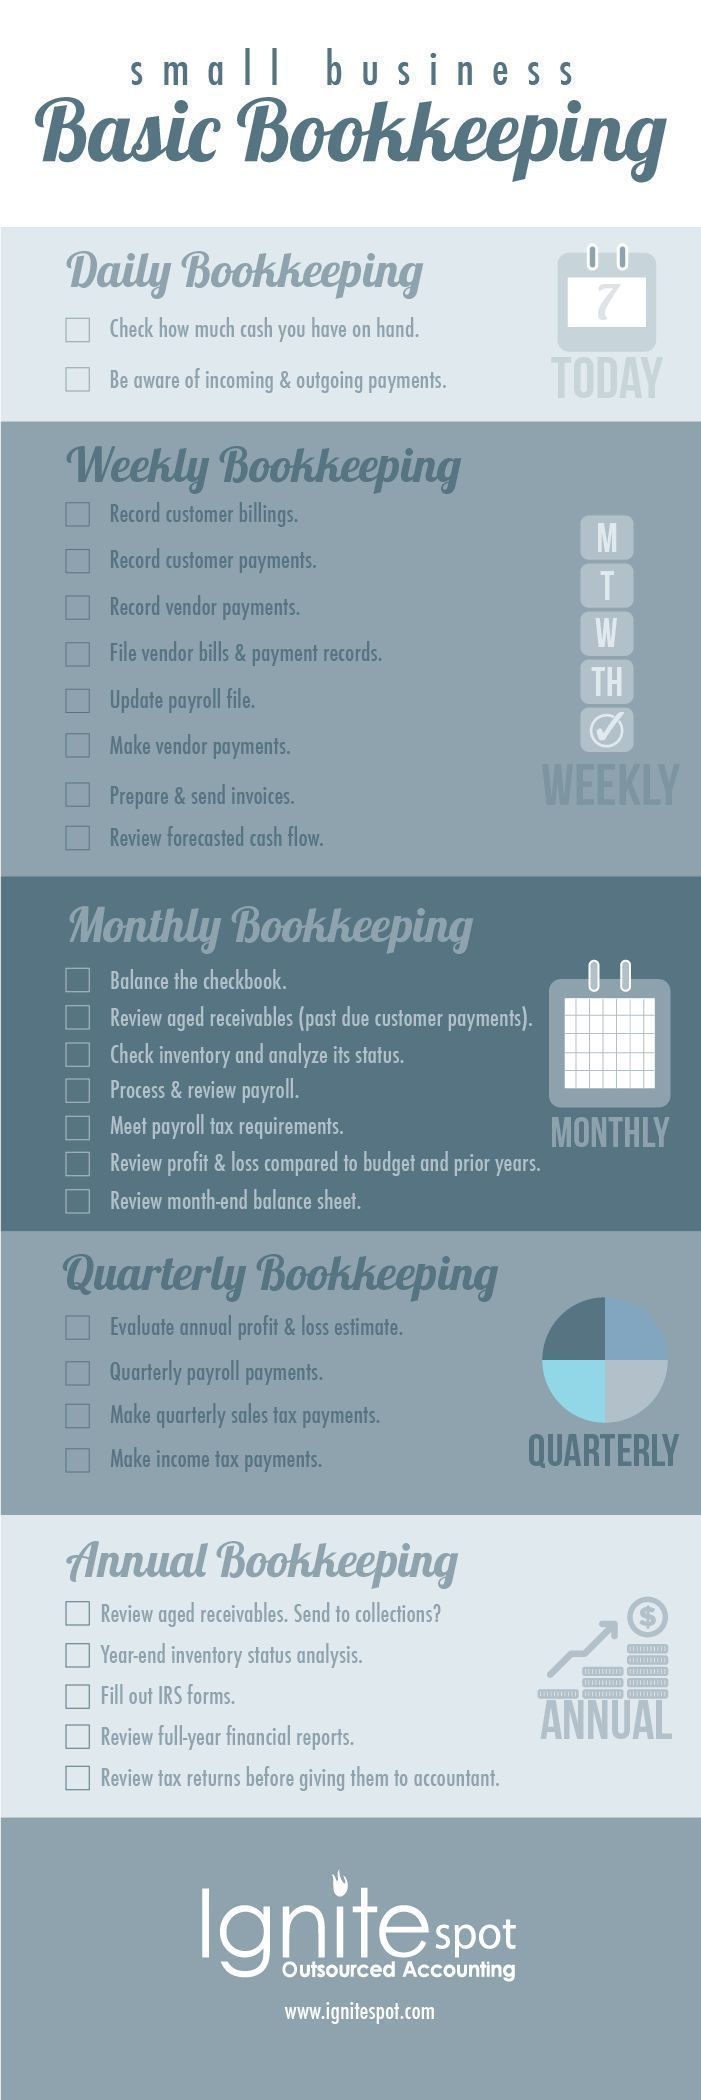 Virtual Bookkeeping Checklist The Basics For Small Businesses